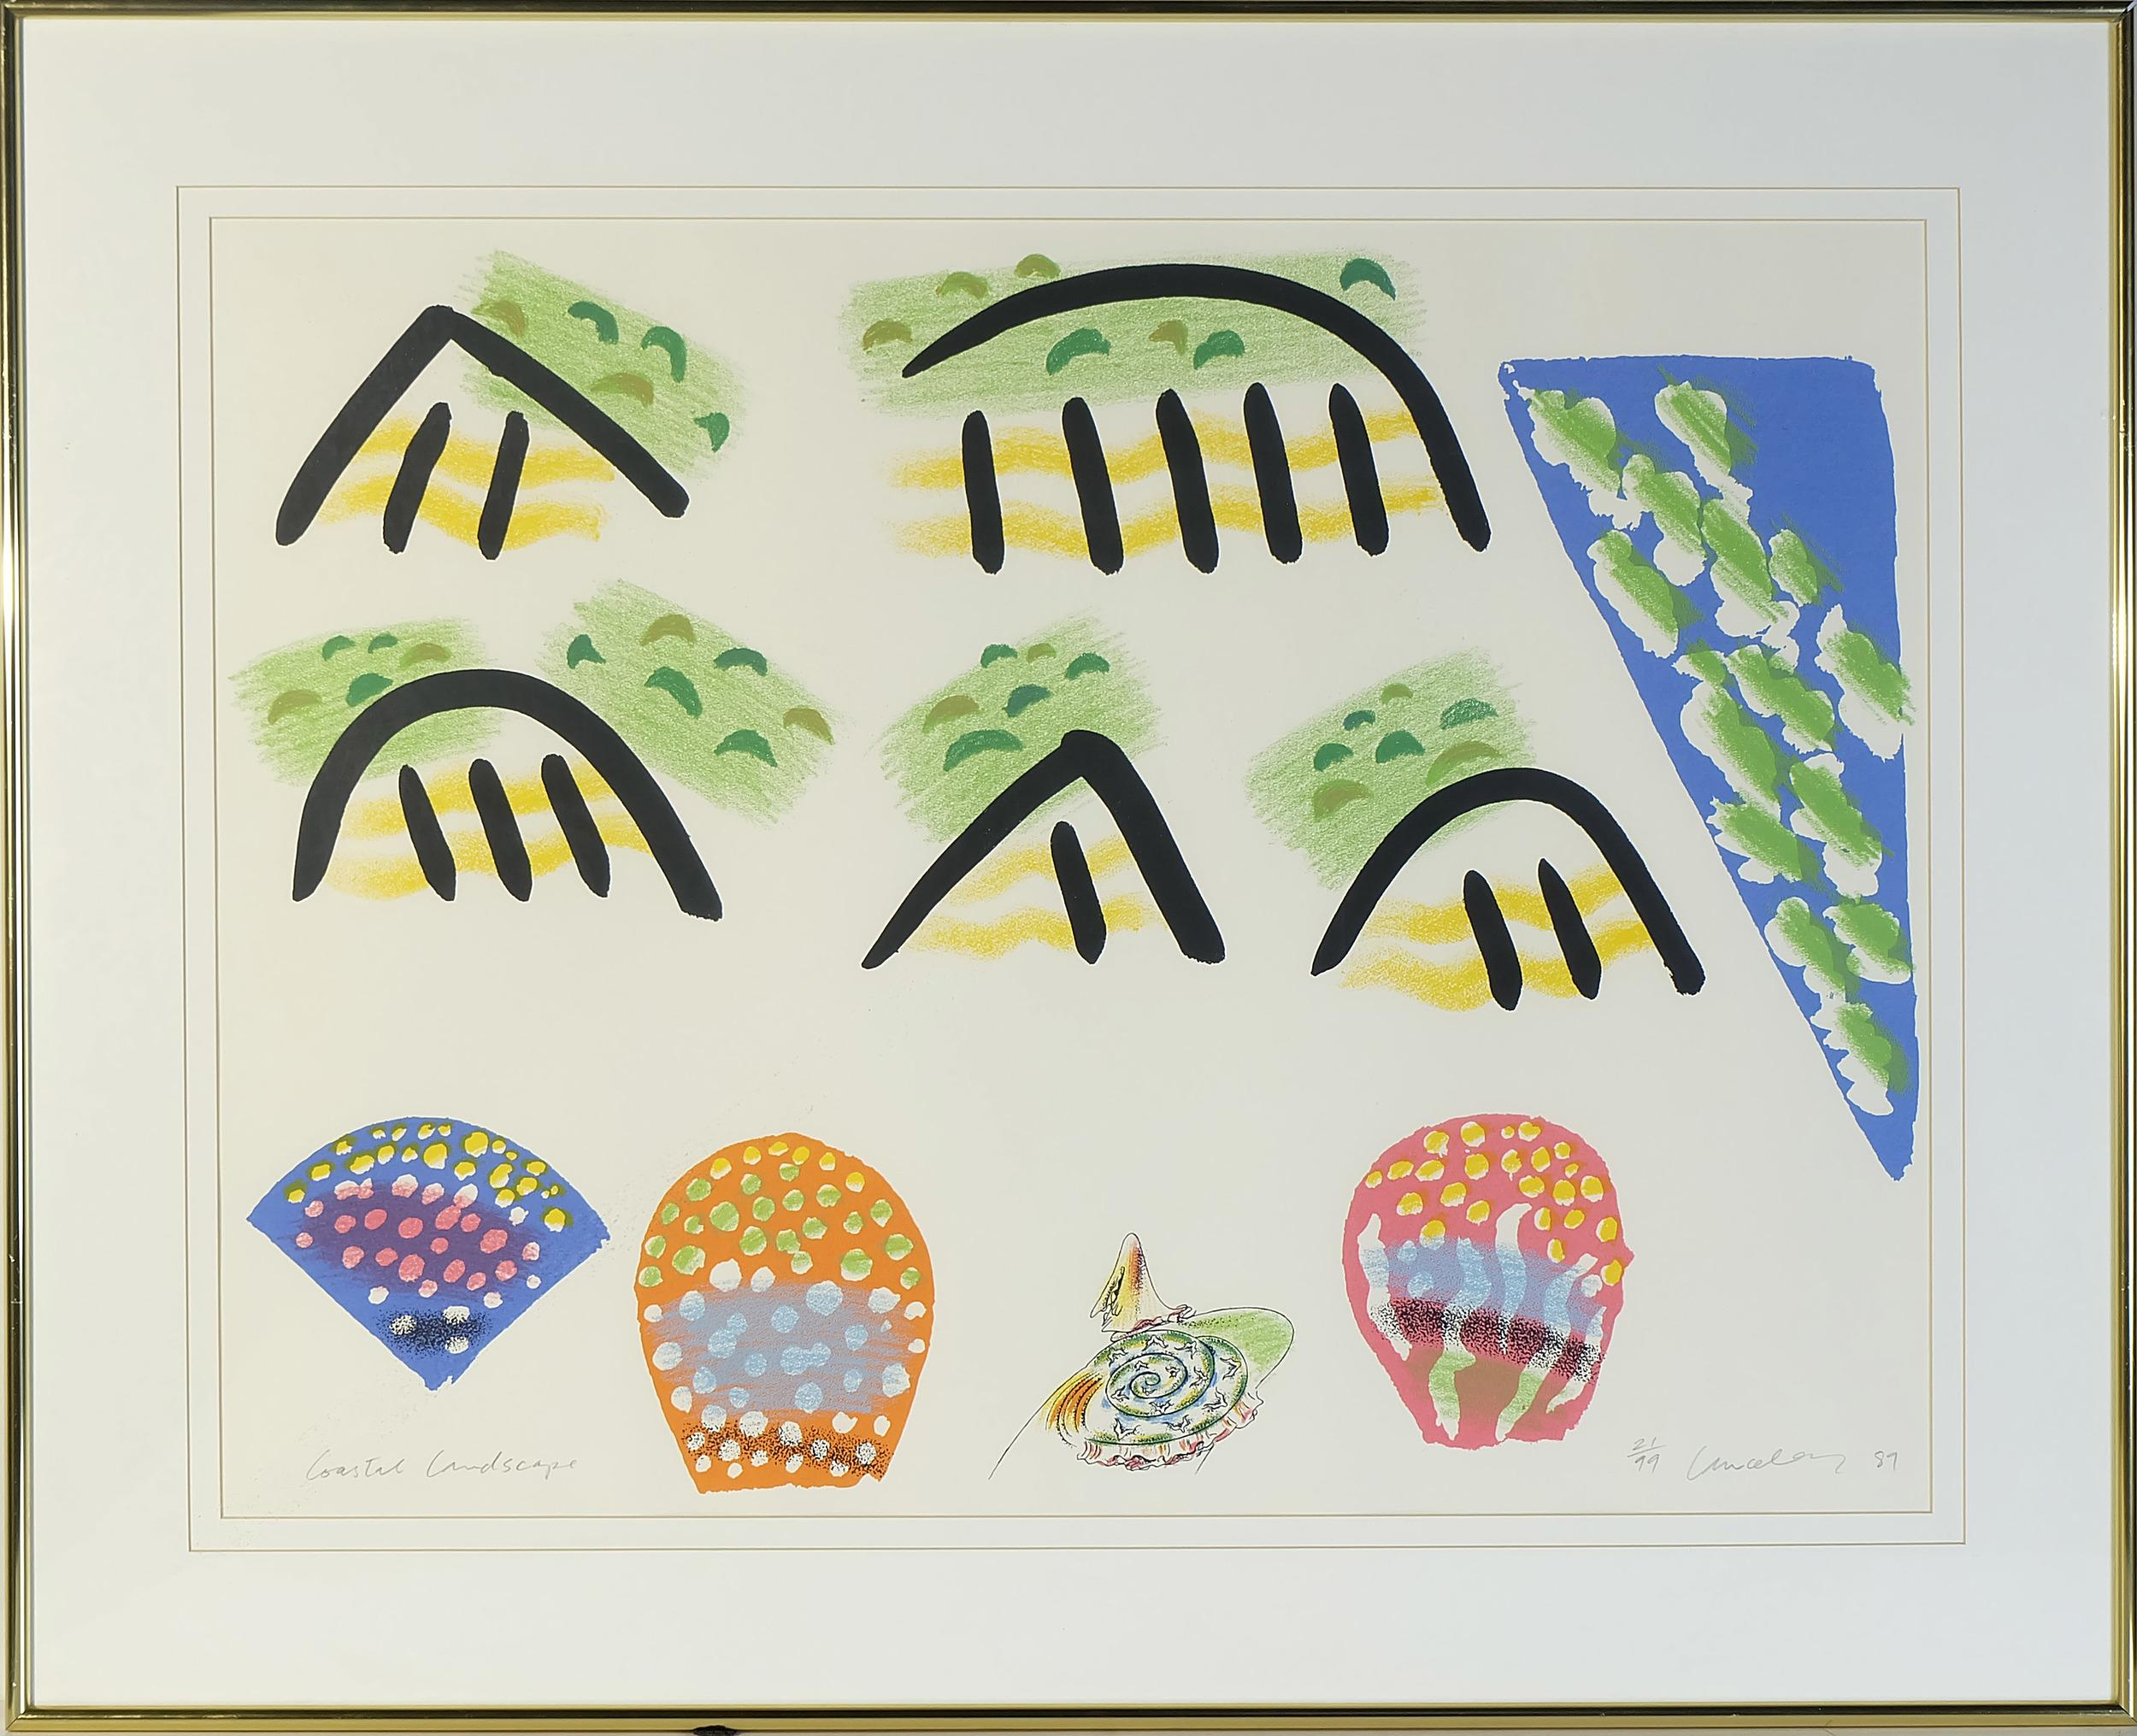 'Colin Lanceley (1938-2015) Coastal Landscape Screen Print Edition 21/99'